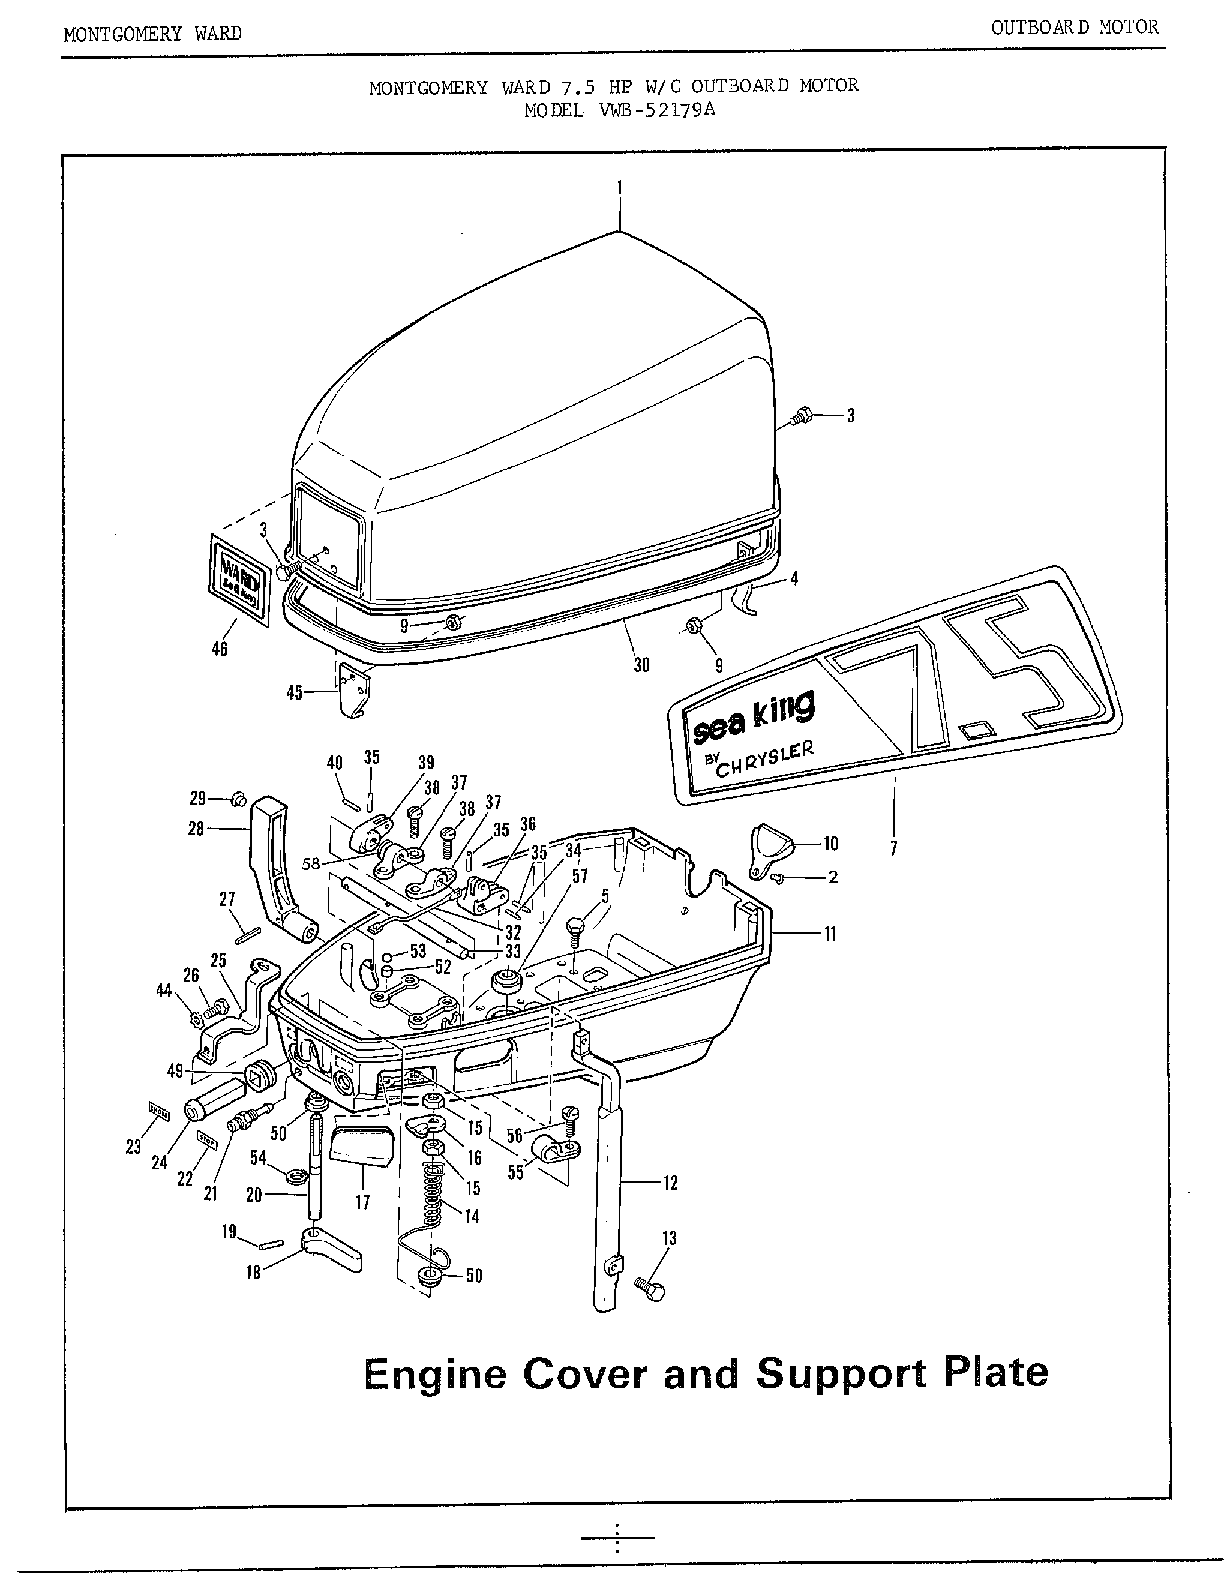 Mercury Outboard Motor Diagram Motor Repalcement Parts And